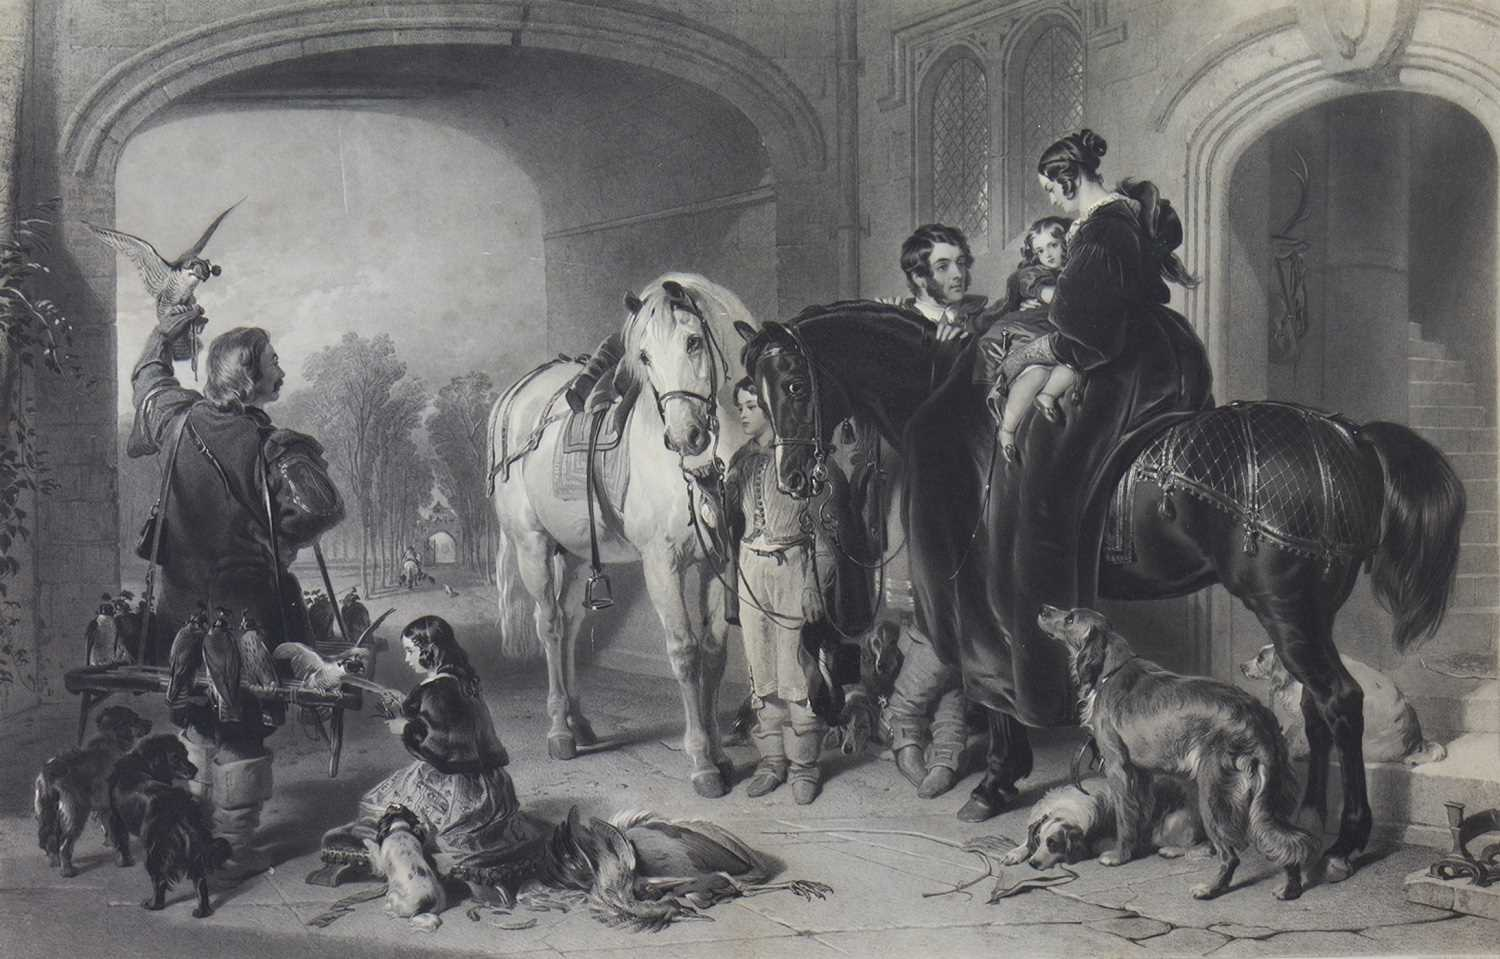 Lot 420-RETURN FROM HAWKING, AN ENGRAVING BY SAMUEL COUSINS, AFTER LANDSEER